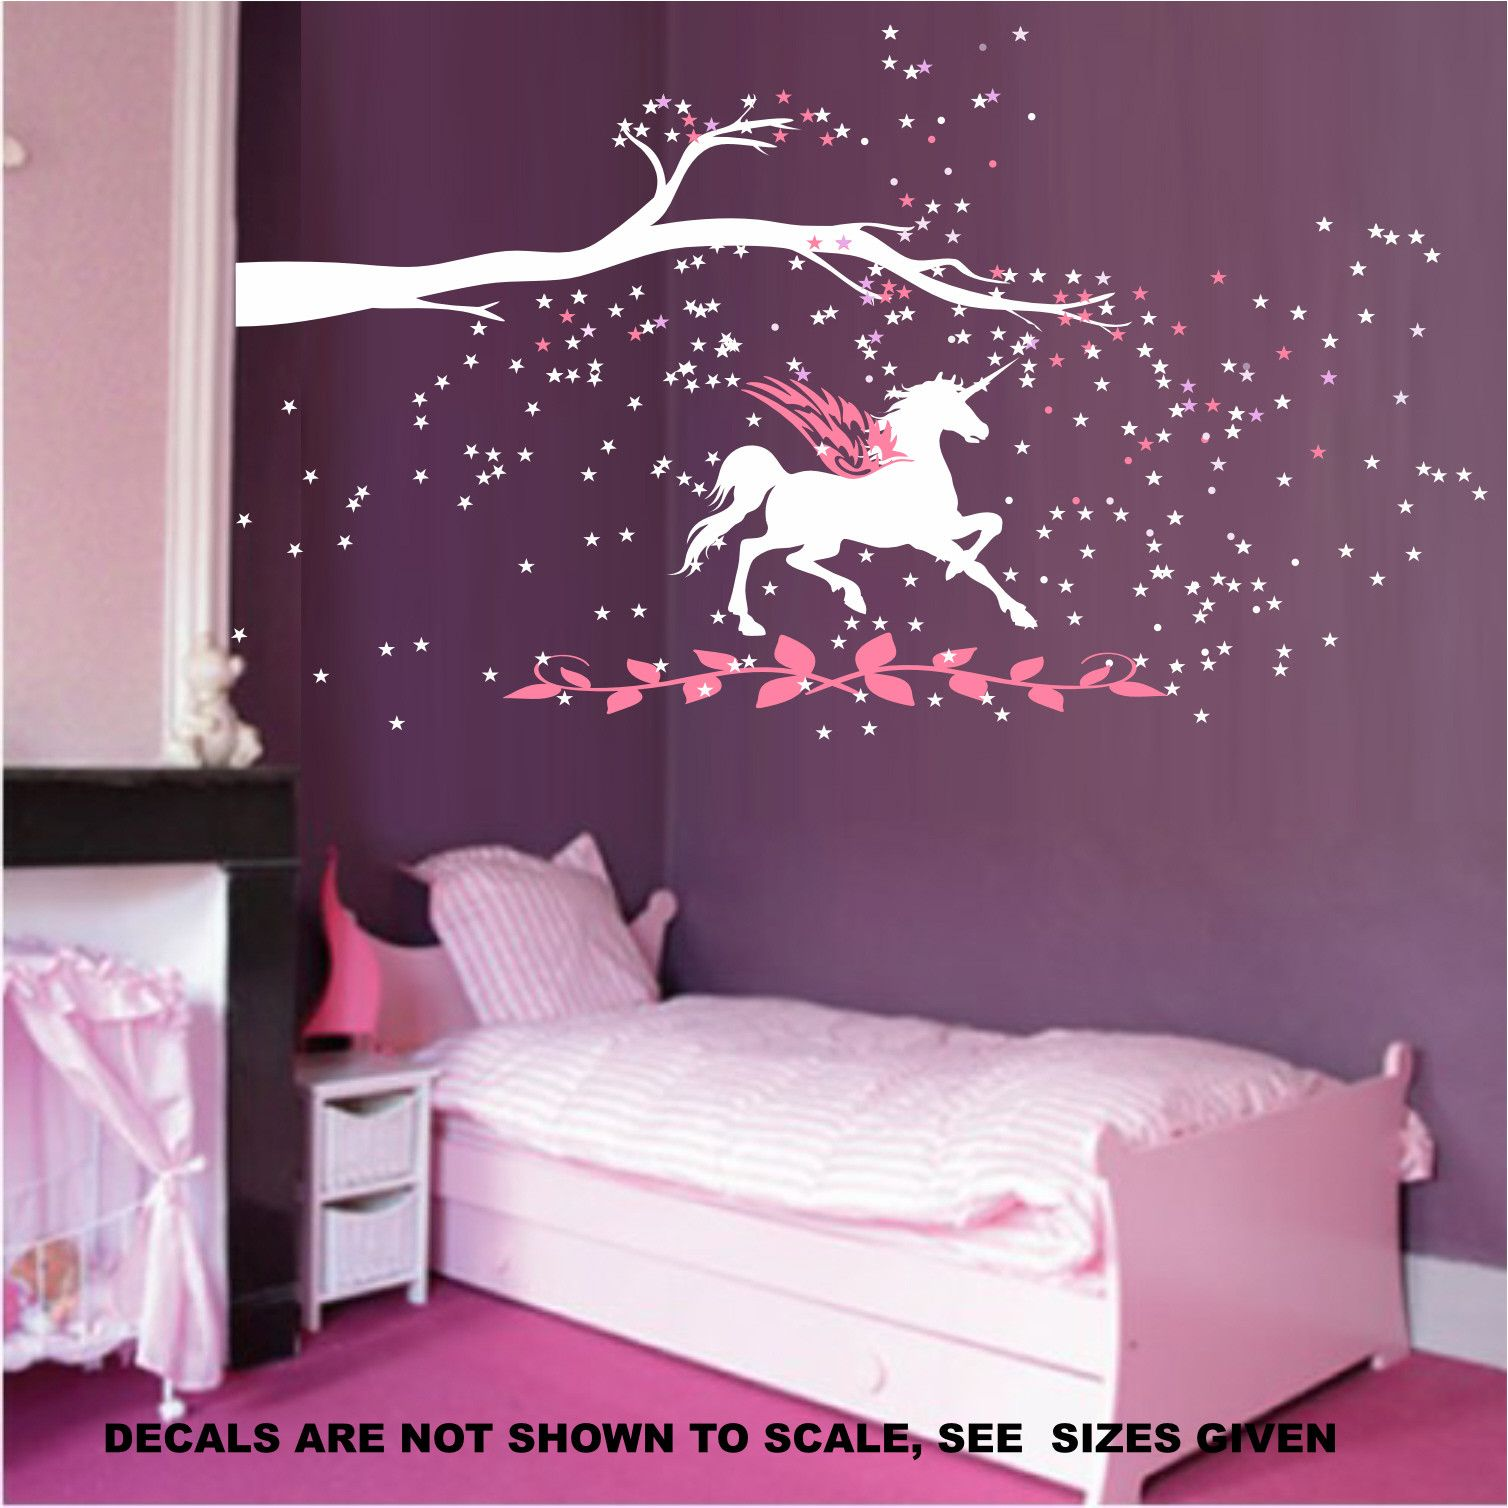 UNICORN FANTASY GIRLS BEDROOM WALL ART STICKER VINYL DECAL